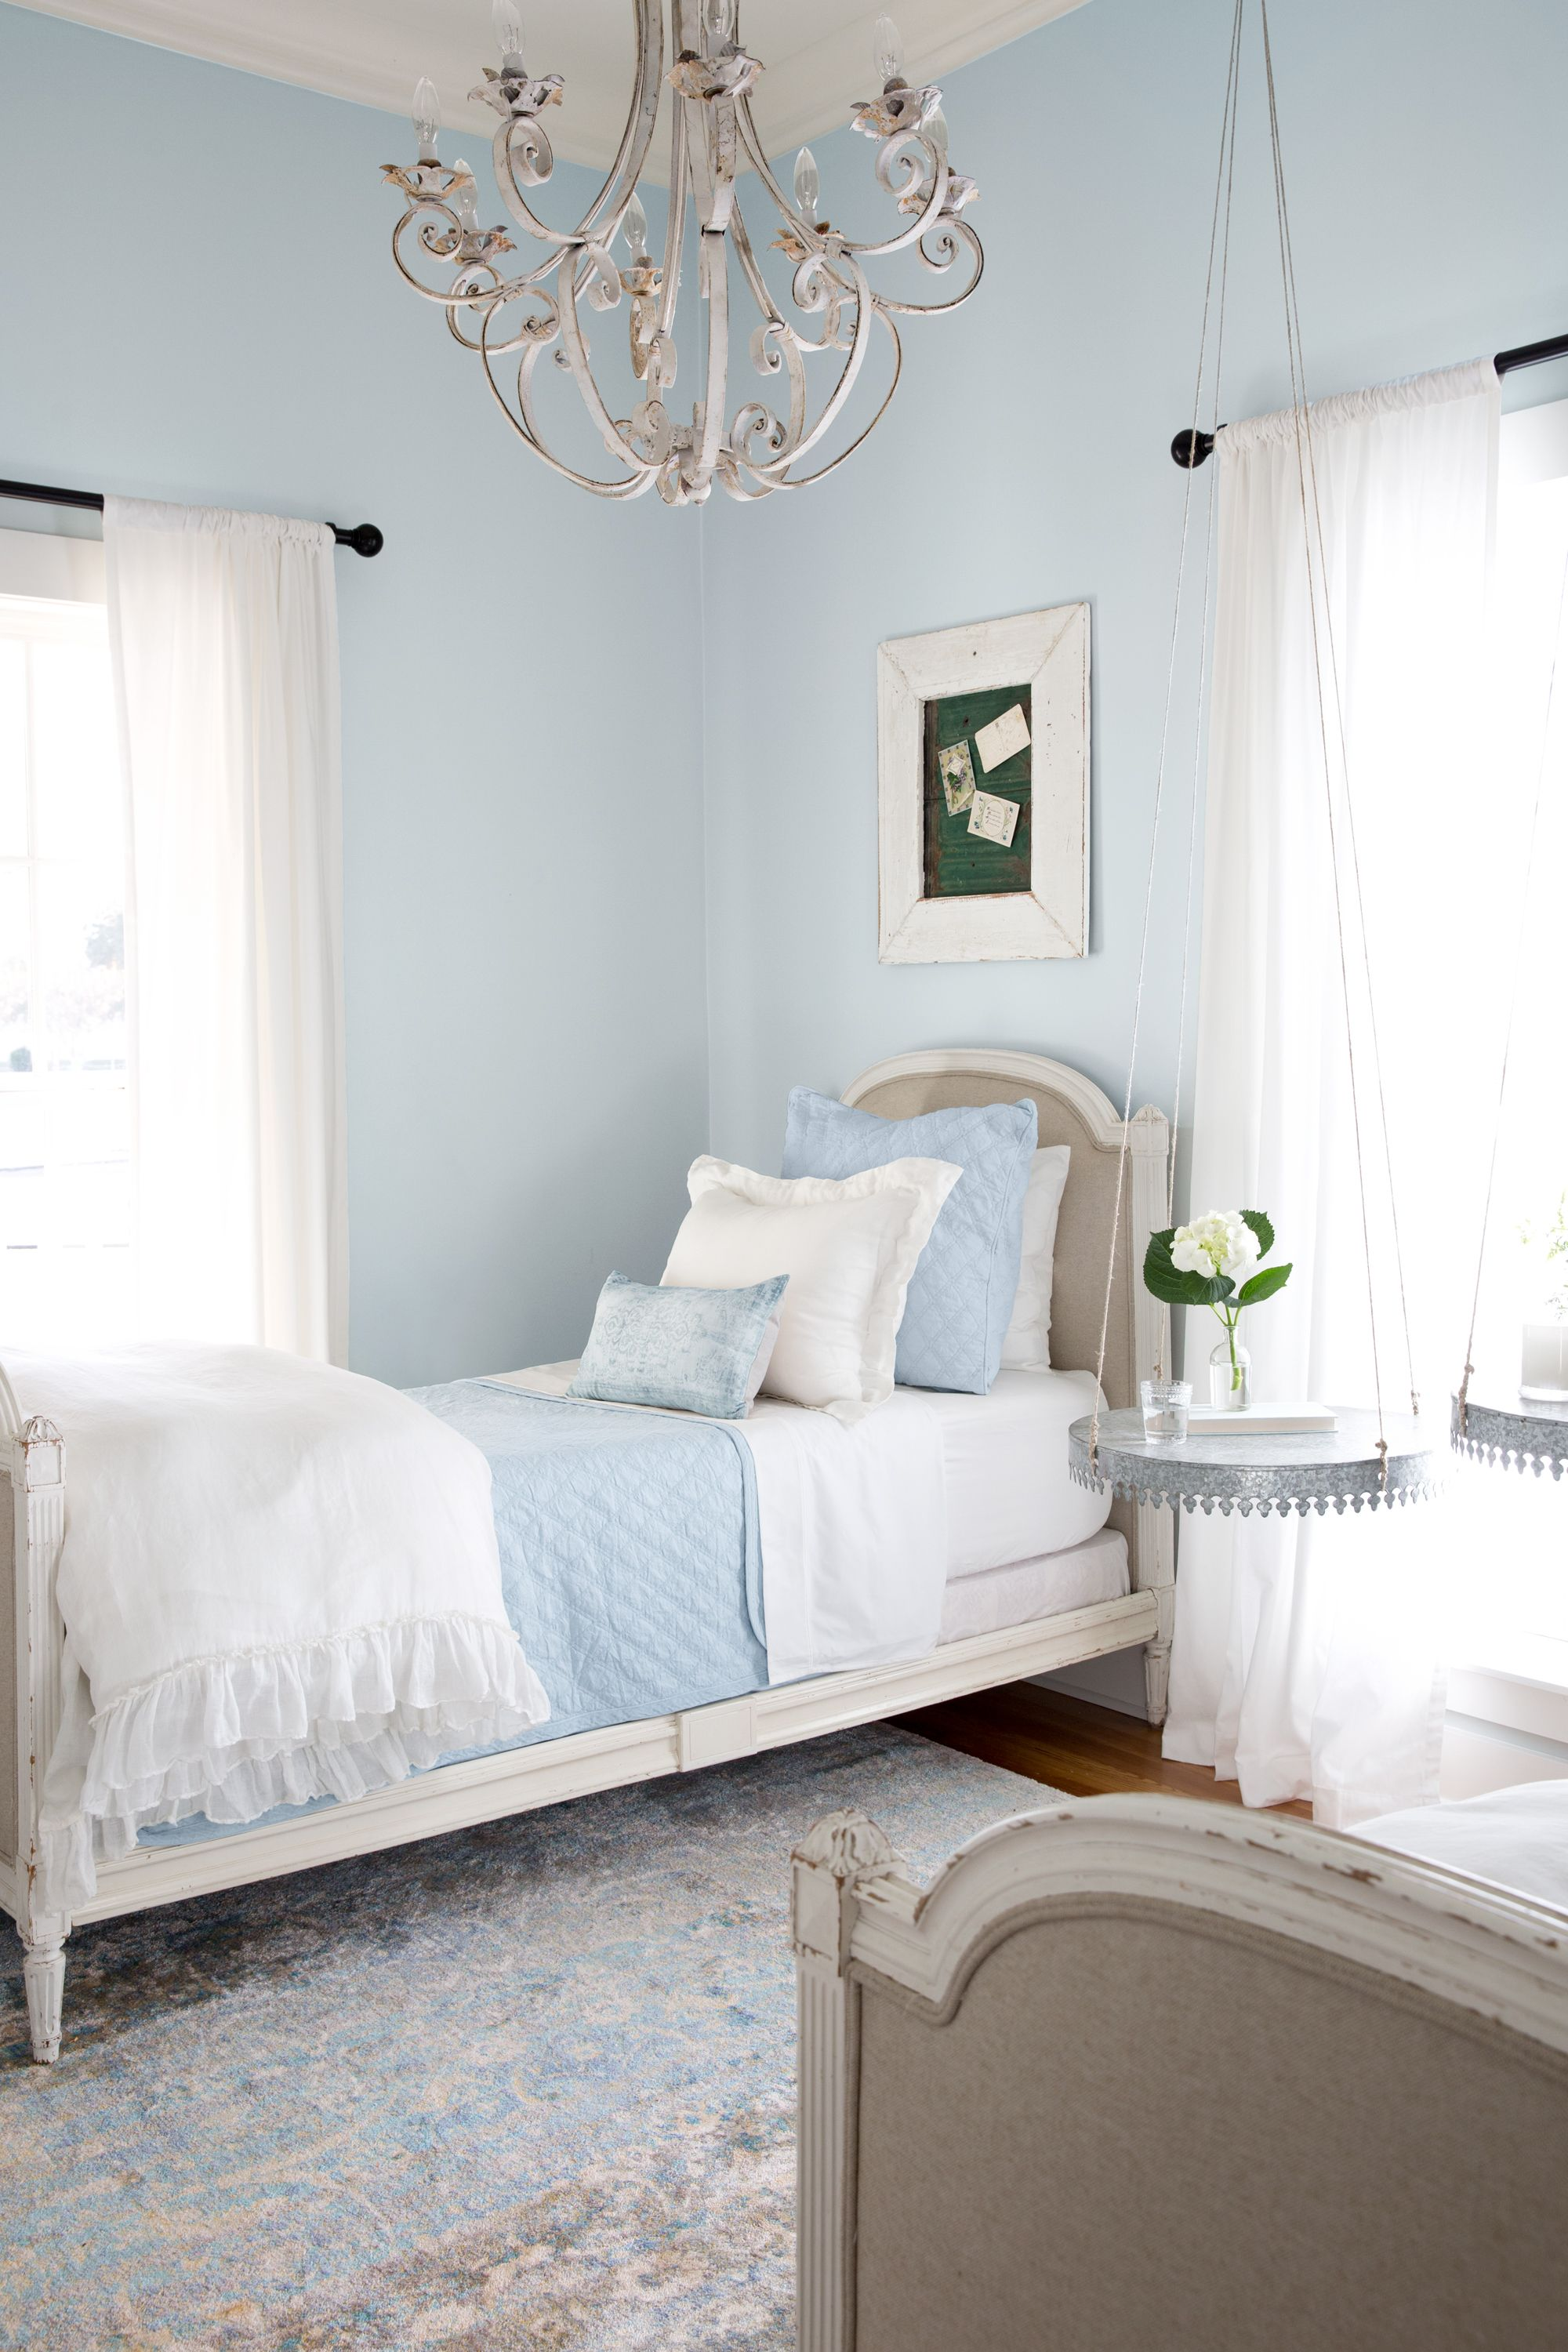 Take a tour of chip and joanna gaines 39 magnolia house b b bedrooms bedroom farmhouse - Magnolia bedding joanna gaines ...